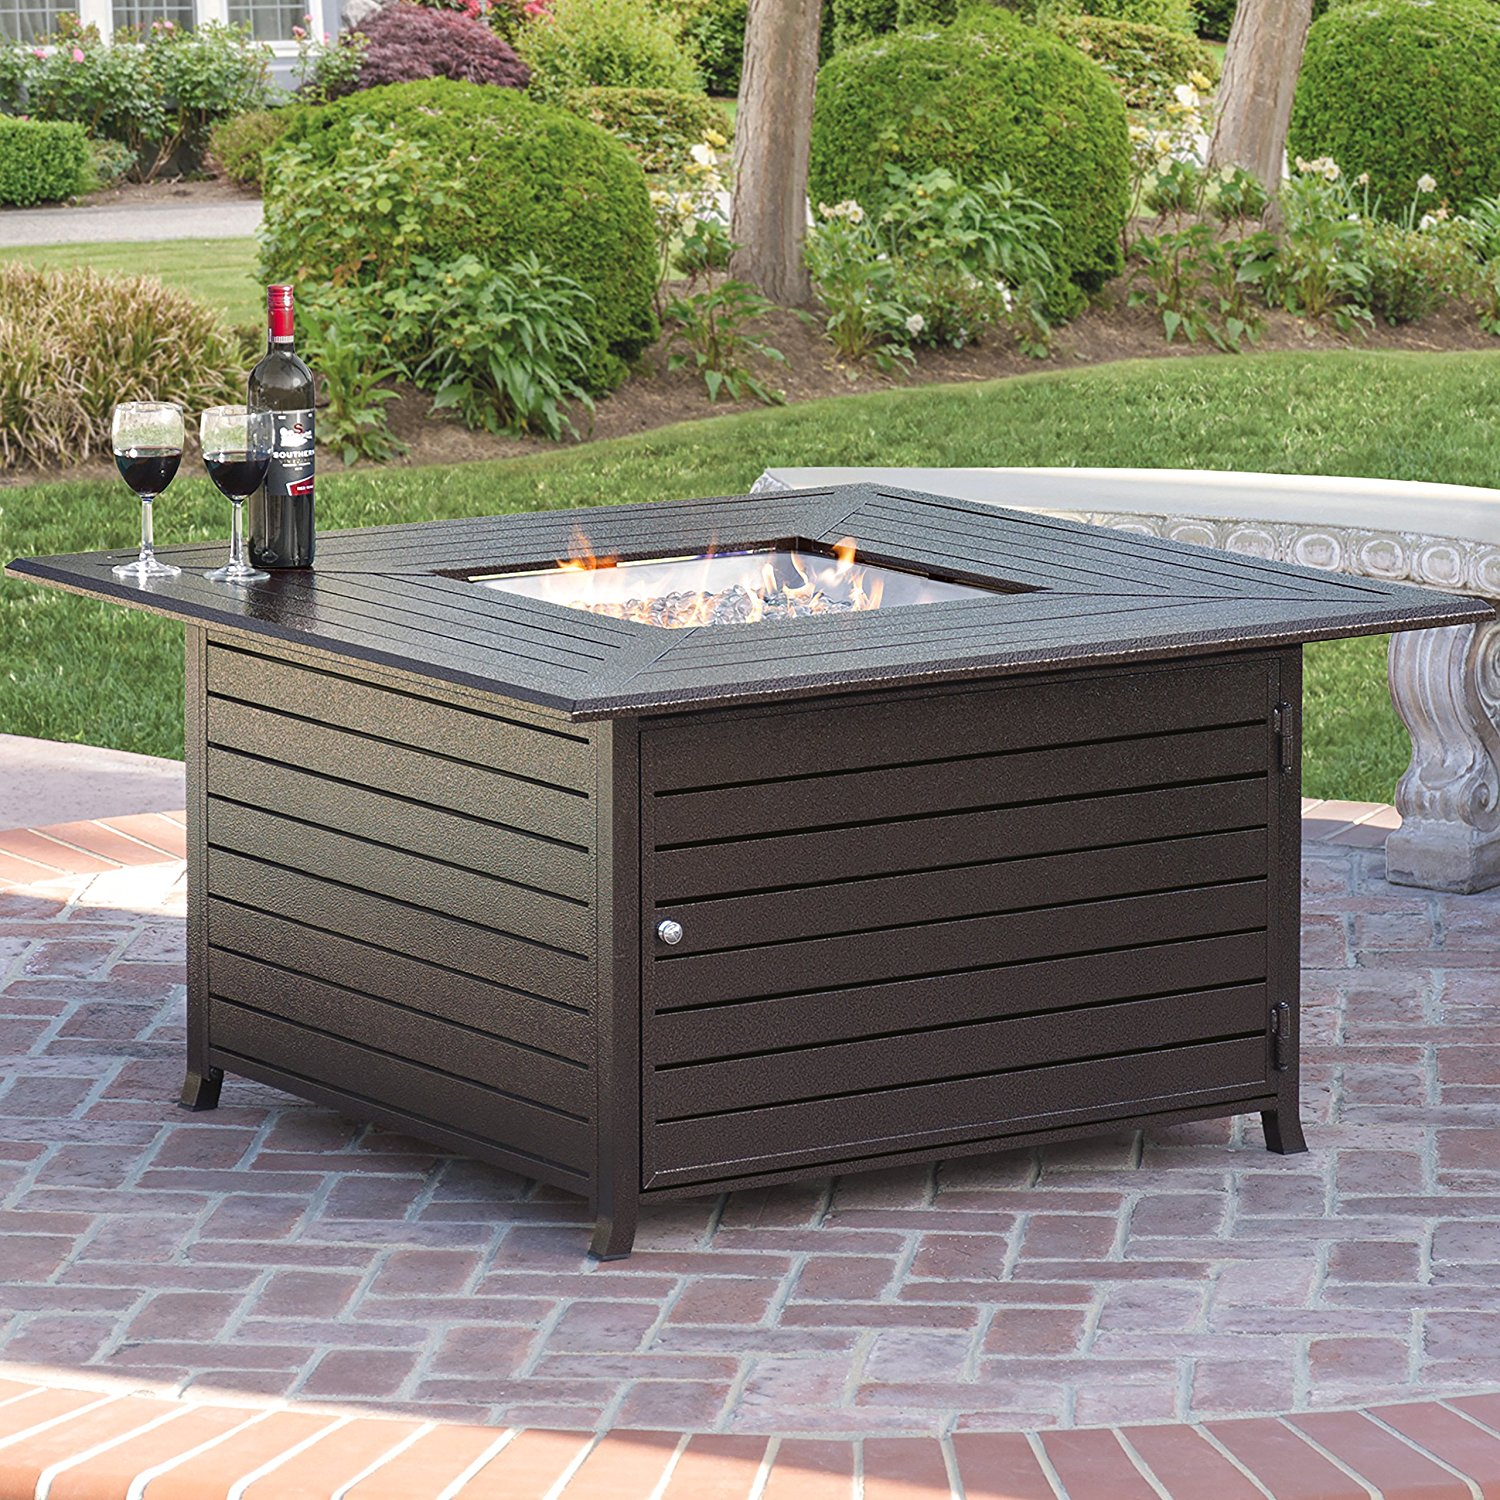 Best Choice Products BCP Extruded Aluminum - Gas Outdoor Fire Pit Table With Cover